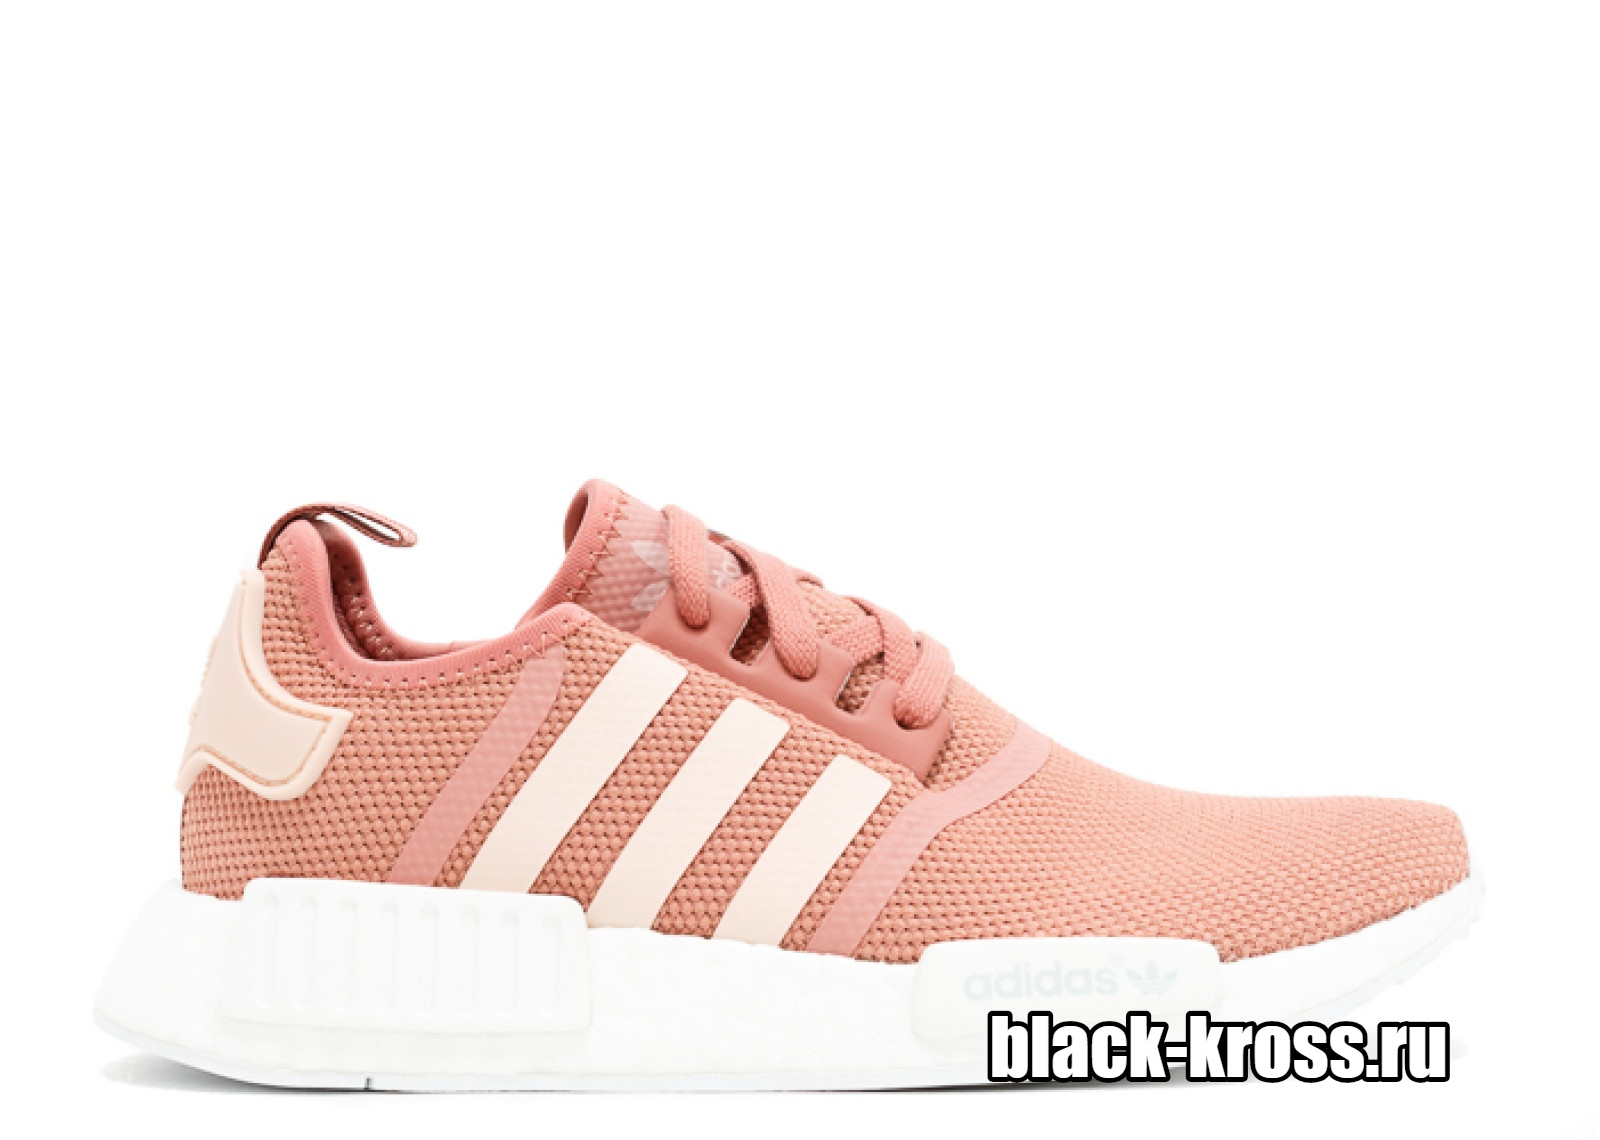 Adidas NMD R1 Pink/White (36-40)